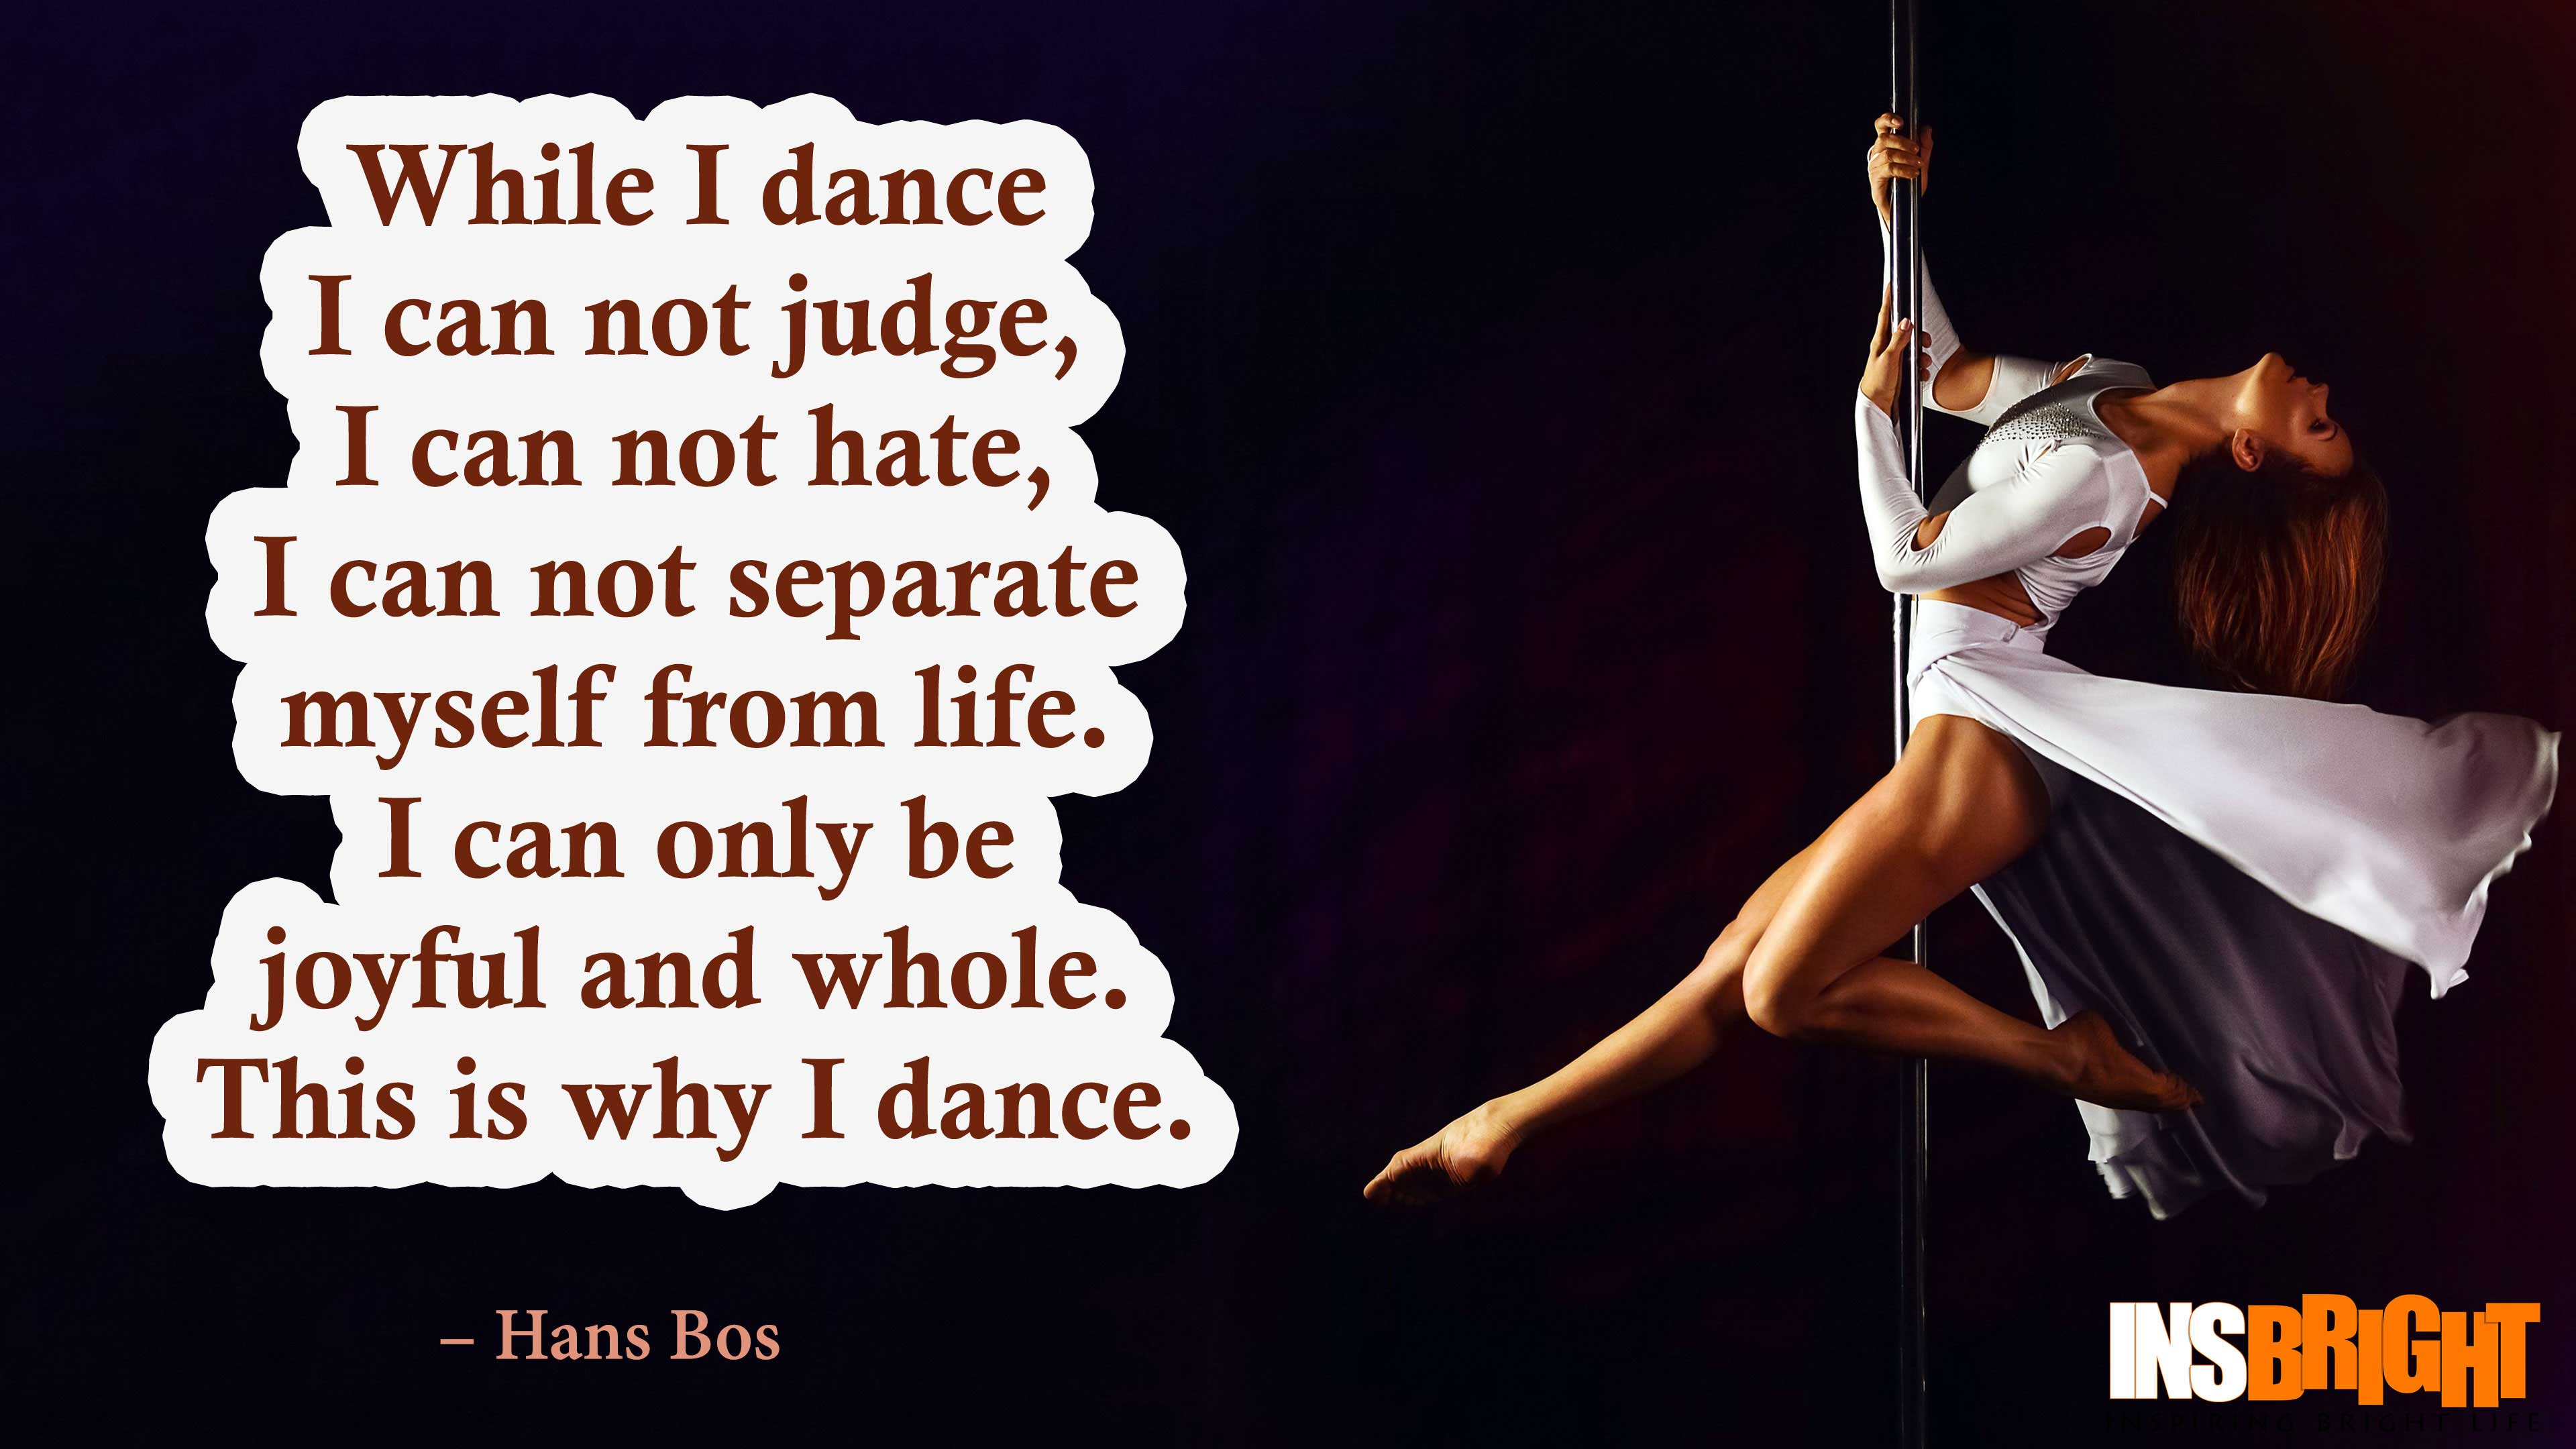 Inspirational Dance Quotes 10 Inspirational Dance Quotes Imagesfamous Dancer  Insbright